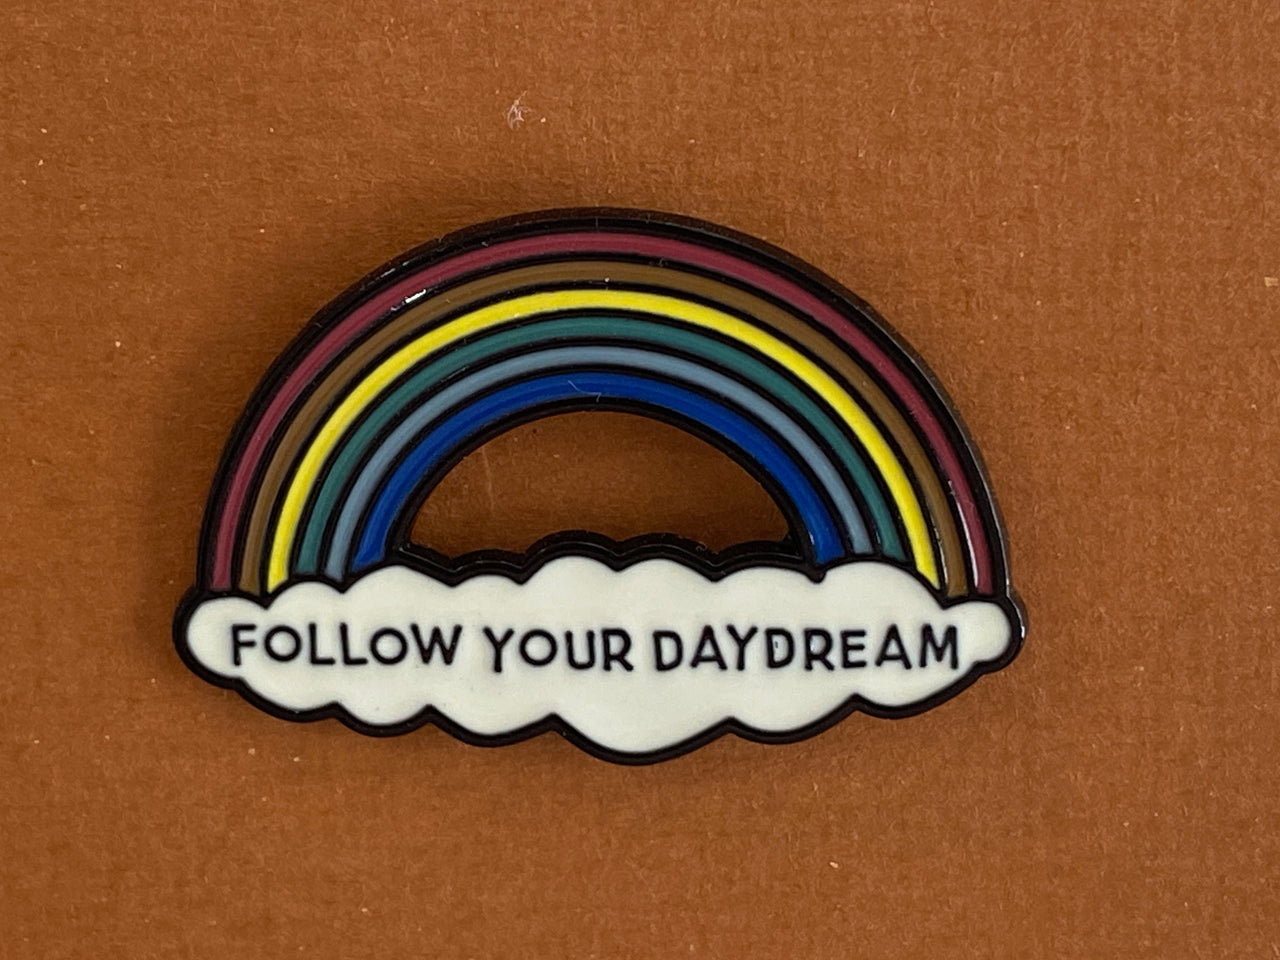 Enamel pin - Follow your daydreams